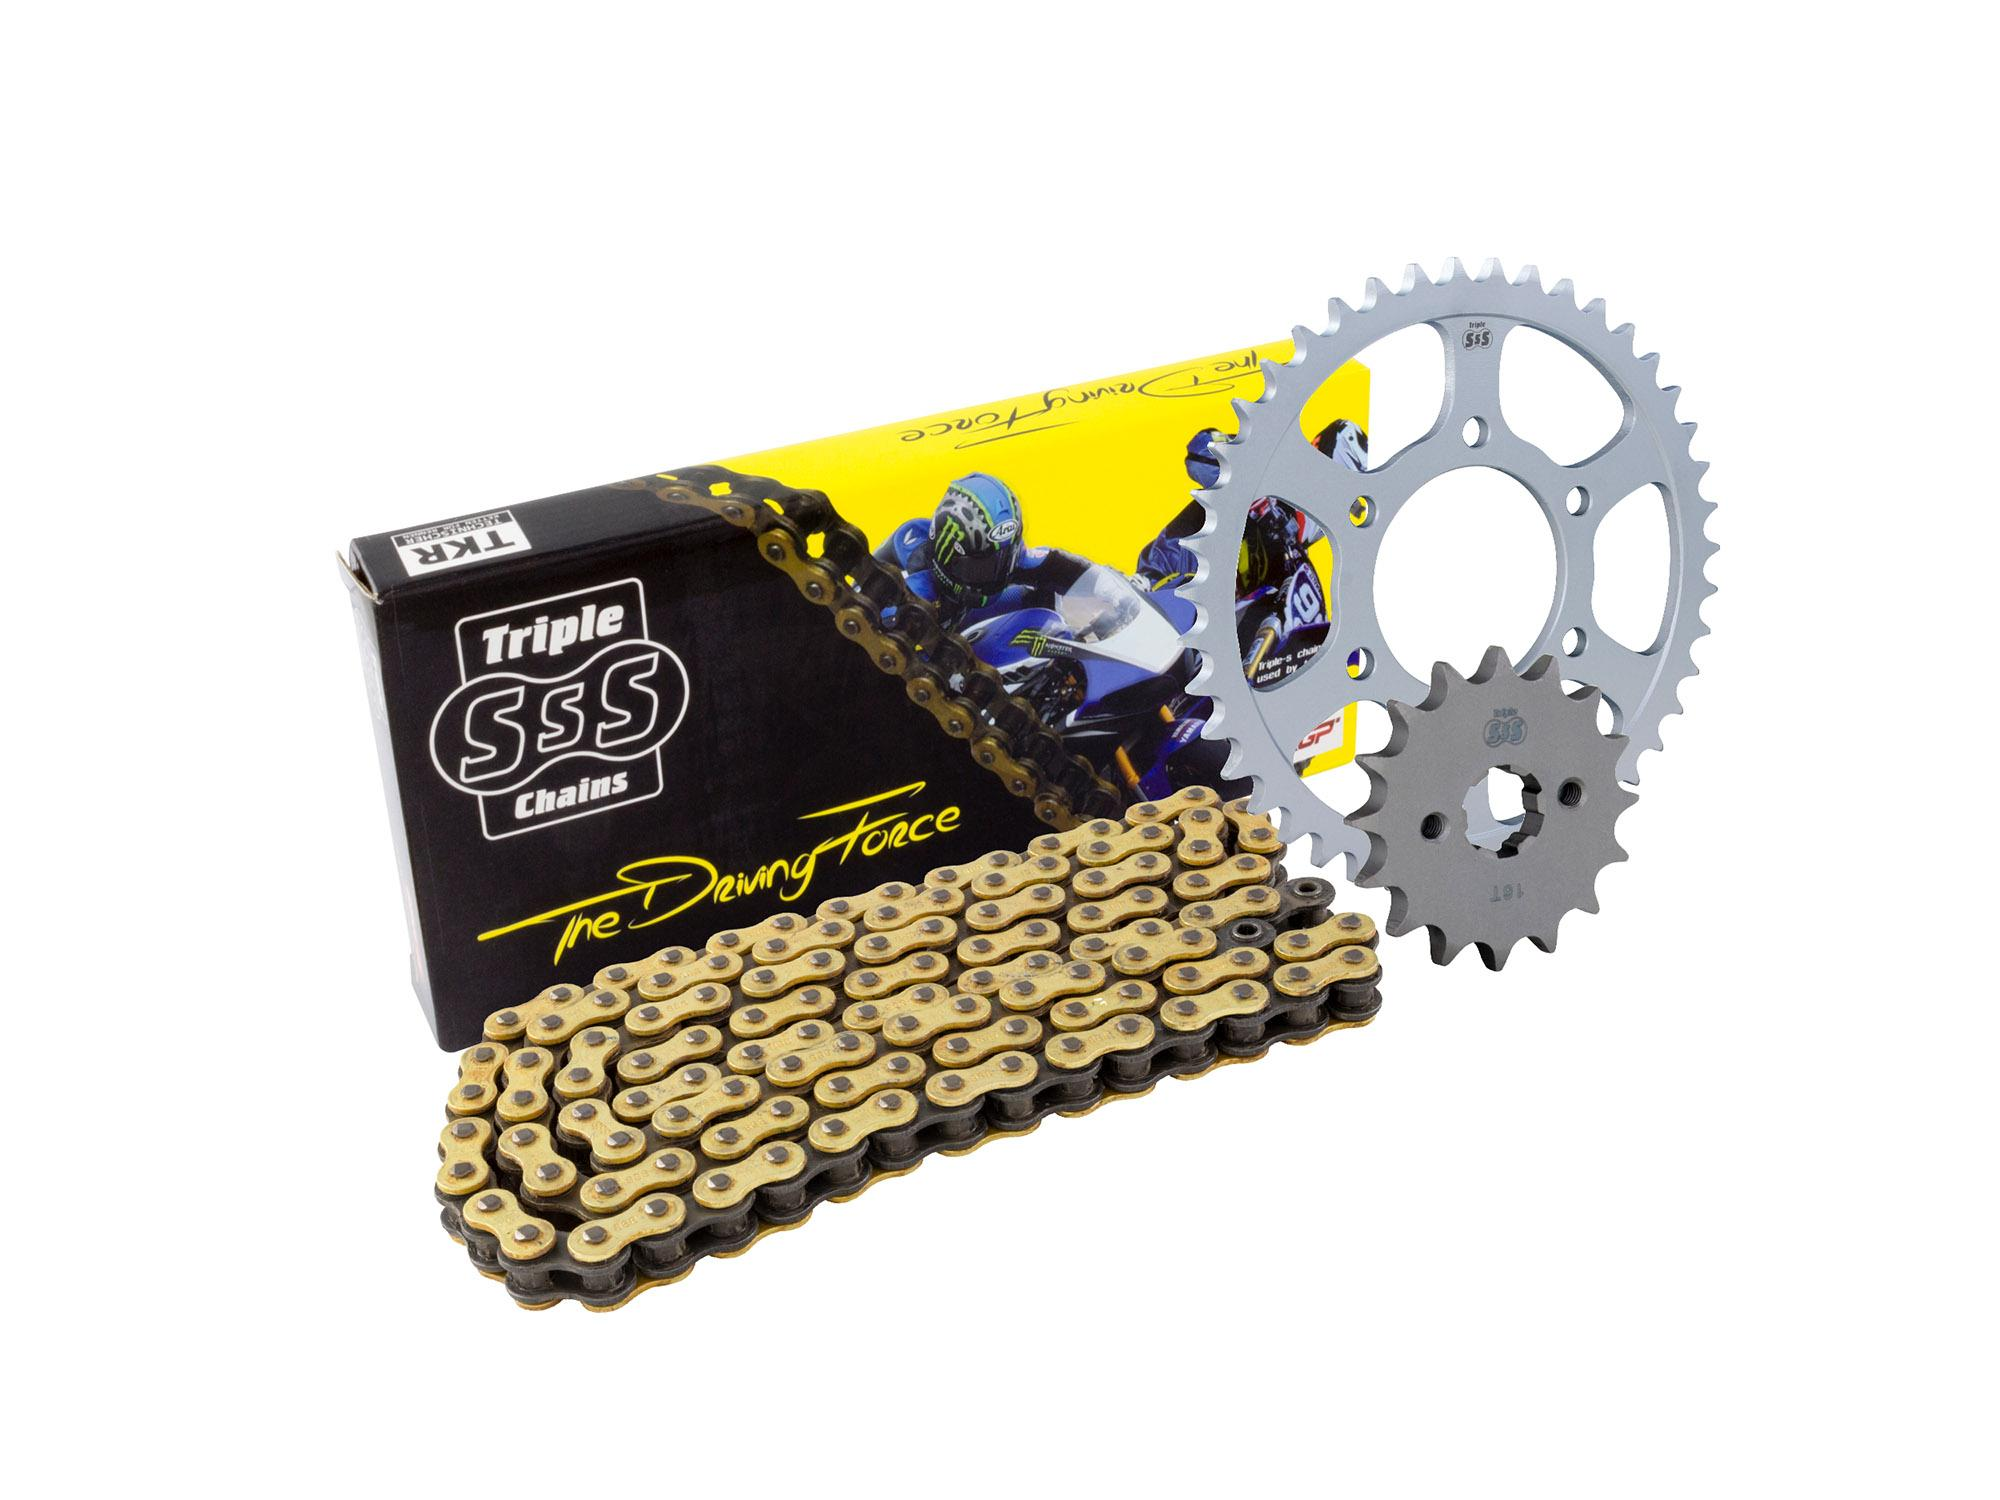 Honda CBR600 FV/FW 97-98 Chain & Sprocket Kit: 15T Front, 43T Rear, HD O-Ring Gold Chain 525H 110Link